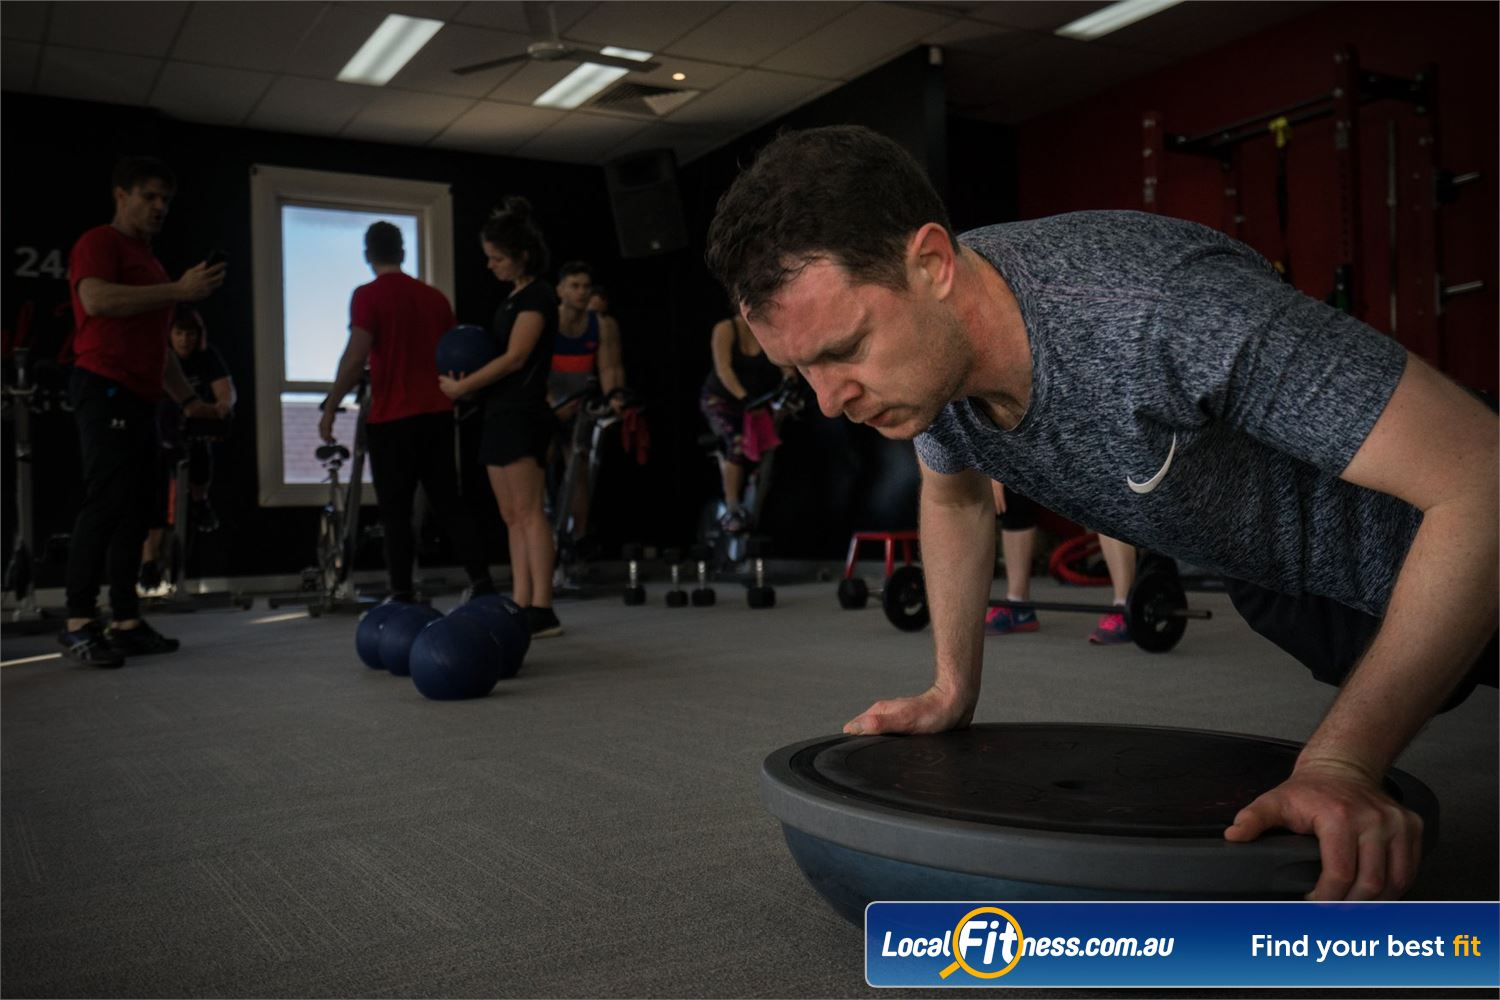 Equilibrium Health & Fitness 24/7 Near Carlton Join our Equilibrium 24/7 North Melbourne gym community